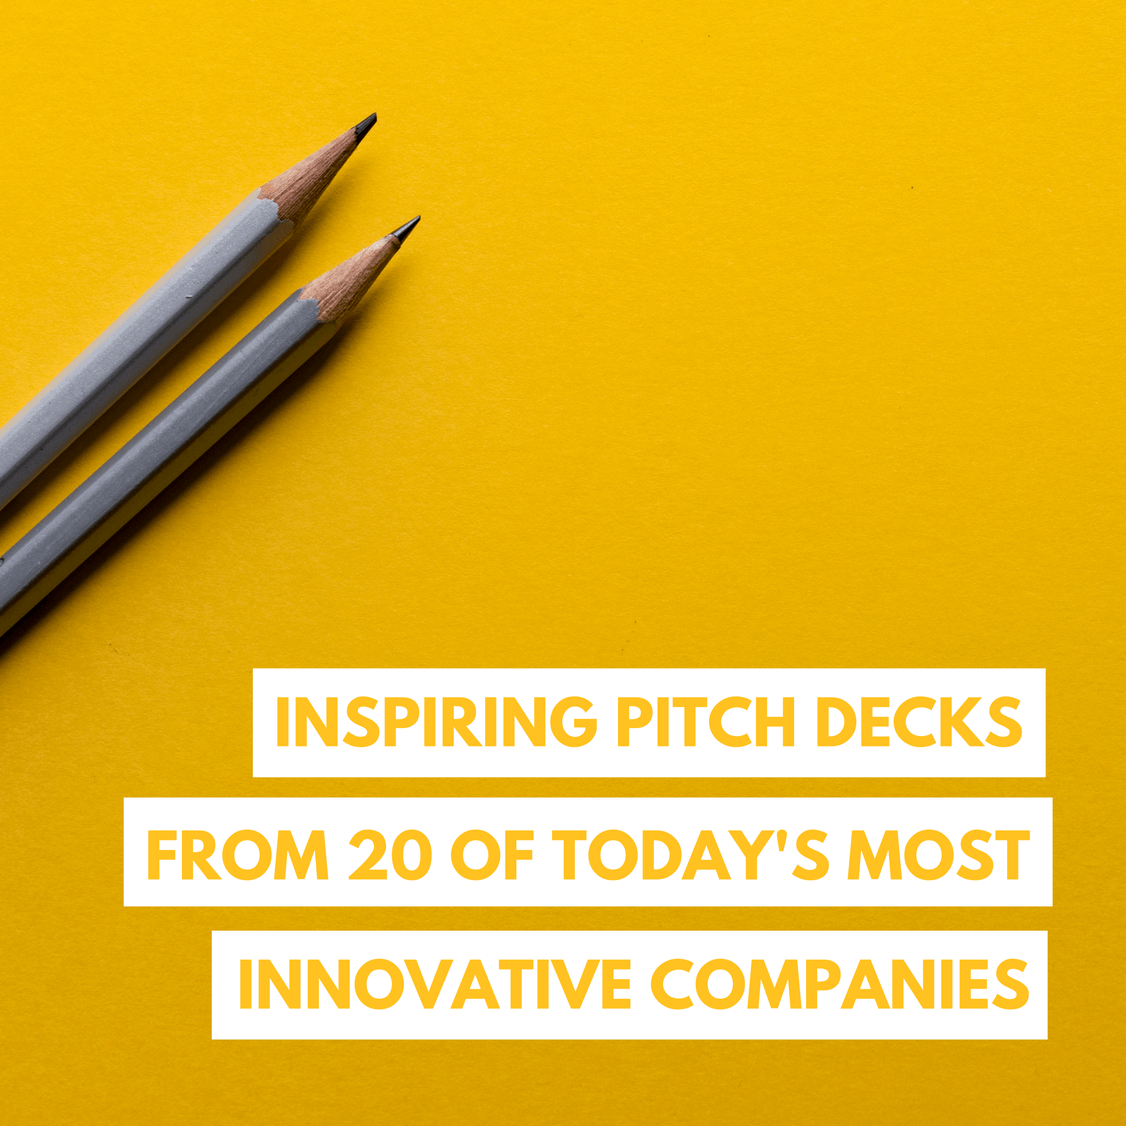 copy-of-copy-of-copy-of-copy-of-20-inspiring-pitch-decks-from-todays-most-innovative-companies-1